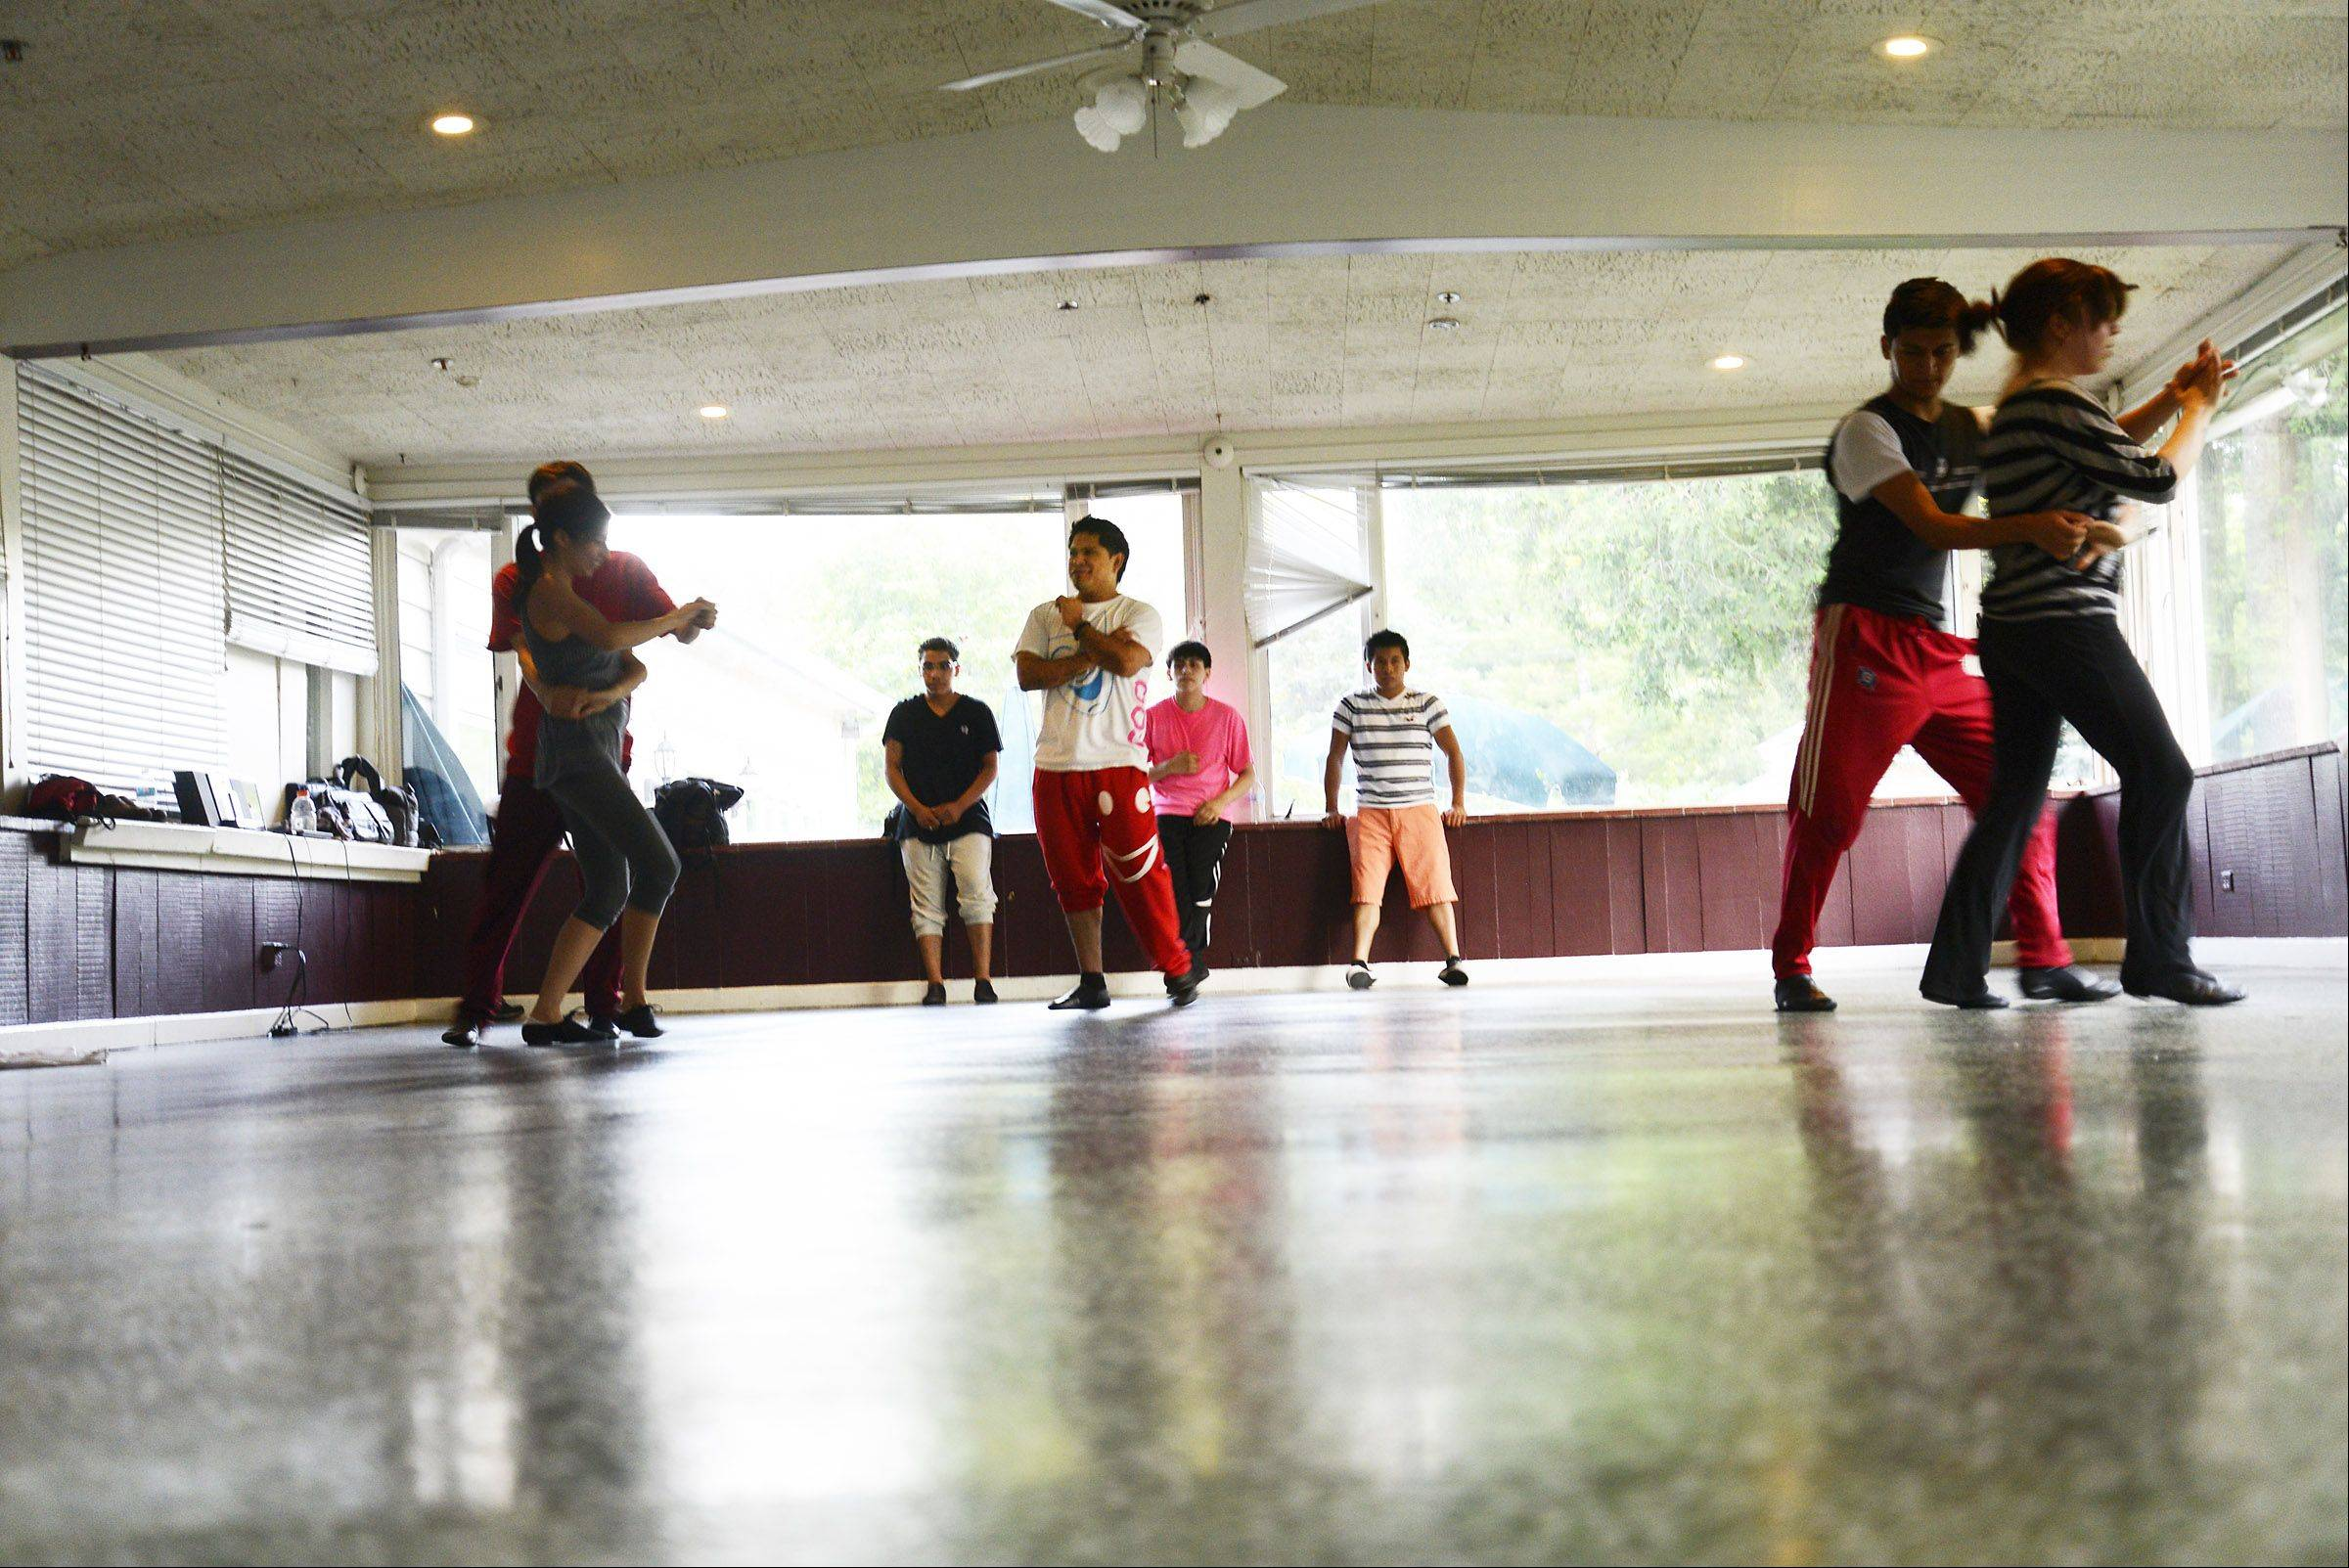 Ivan Moctezuma watches some of his 25 student dancers rehearse in his temporary studio in the Milk Pail banquet hall on Route 25 in East Dundee. Ivan and his brother Angel own and operate Ivangel Dance Studio Inc. and are try to get approval from the City of Elgin to move the business there.